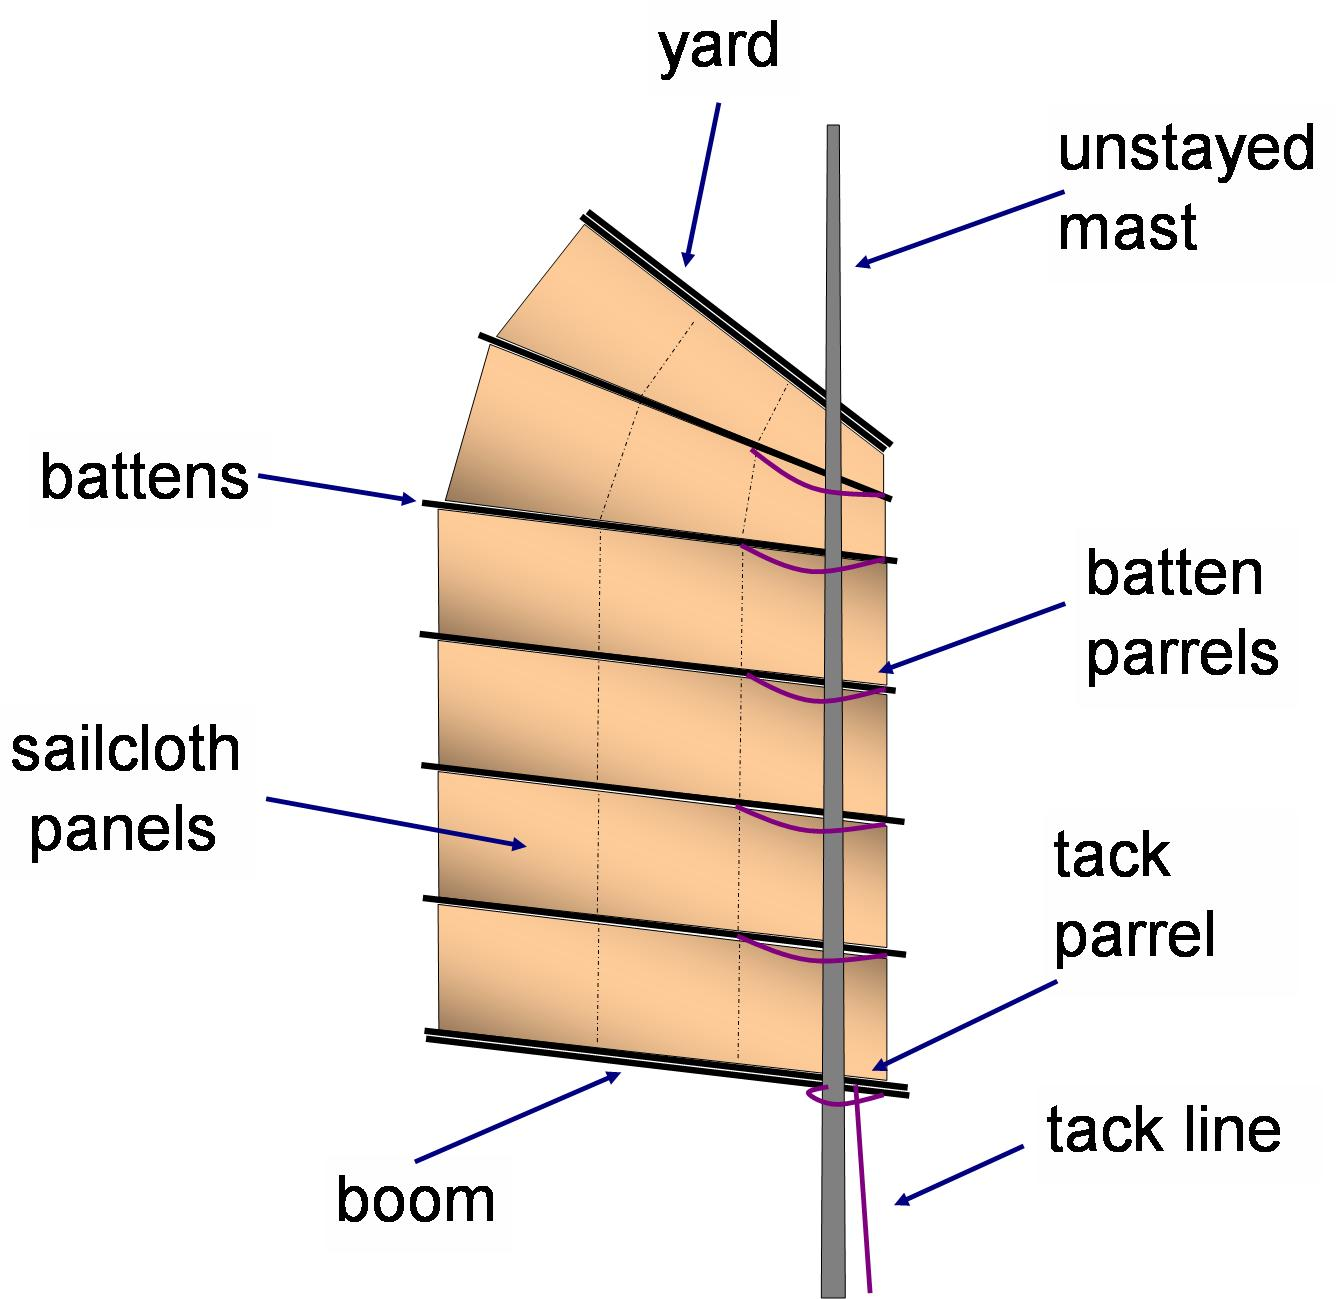 The components of a junk sail.